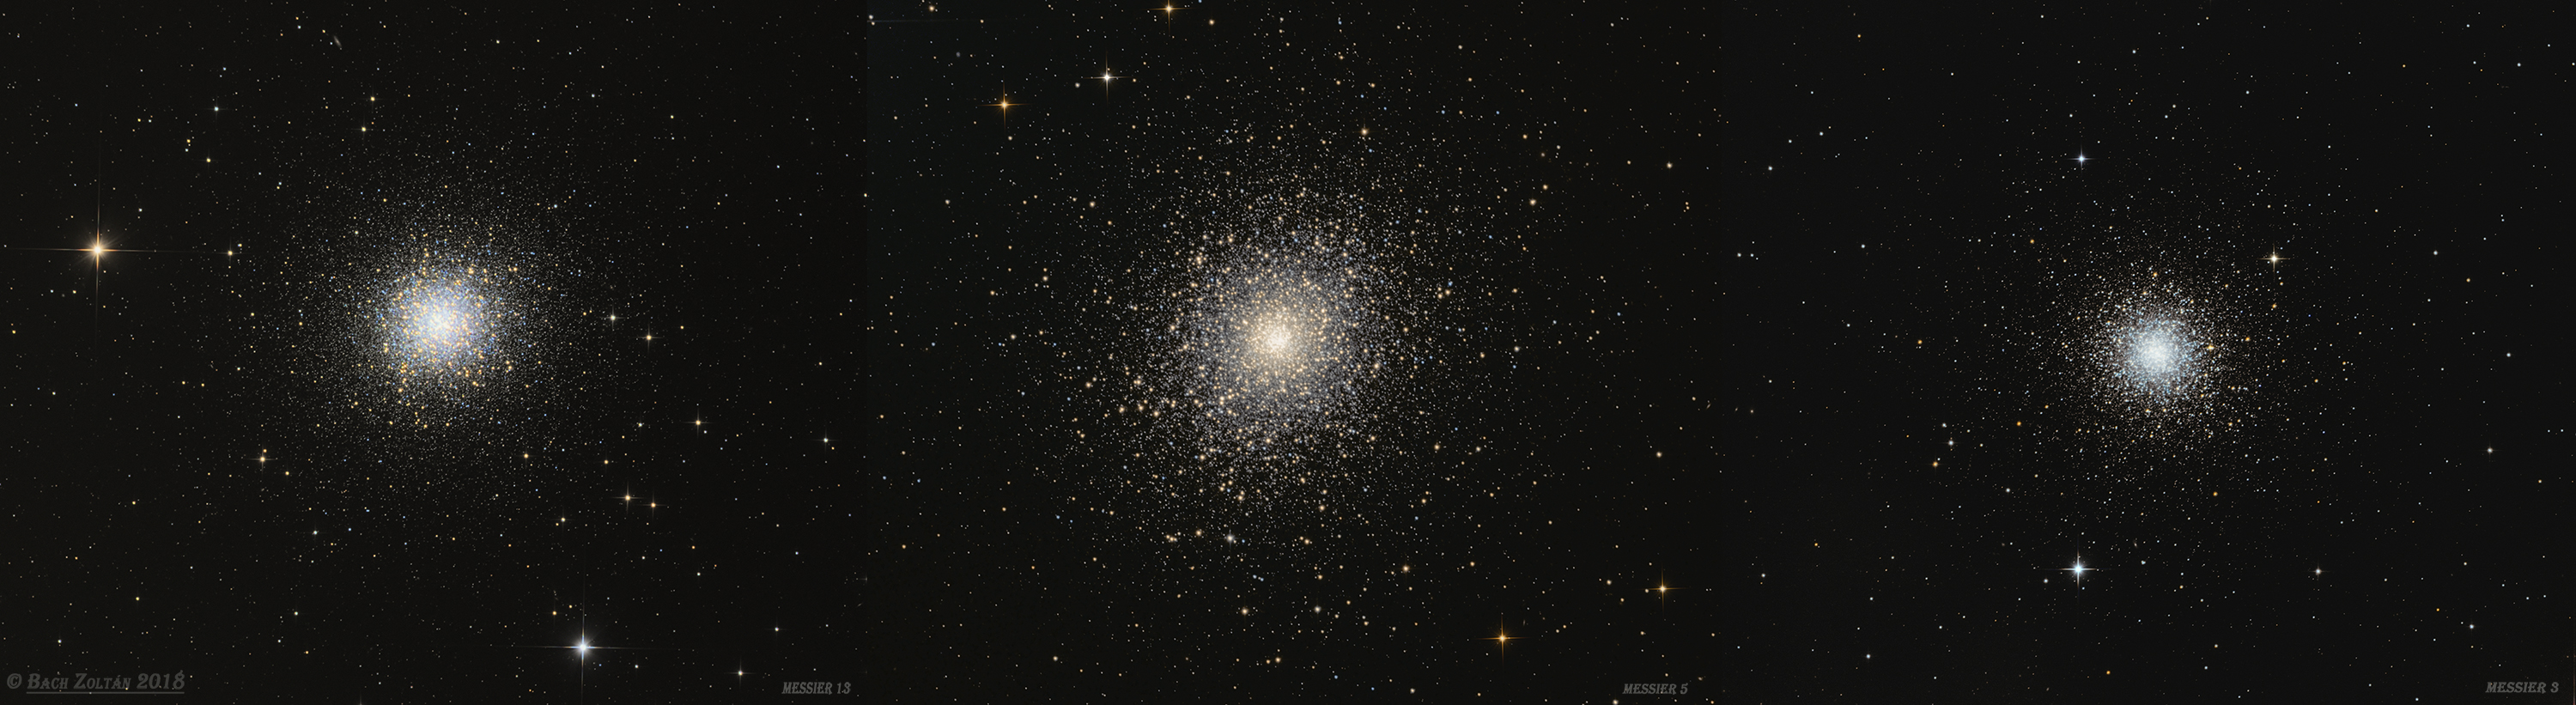 Messier globular clusrters